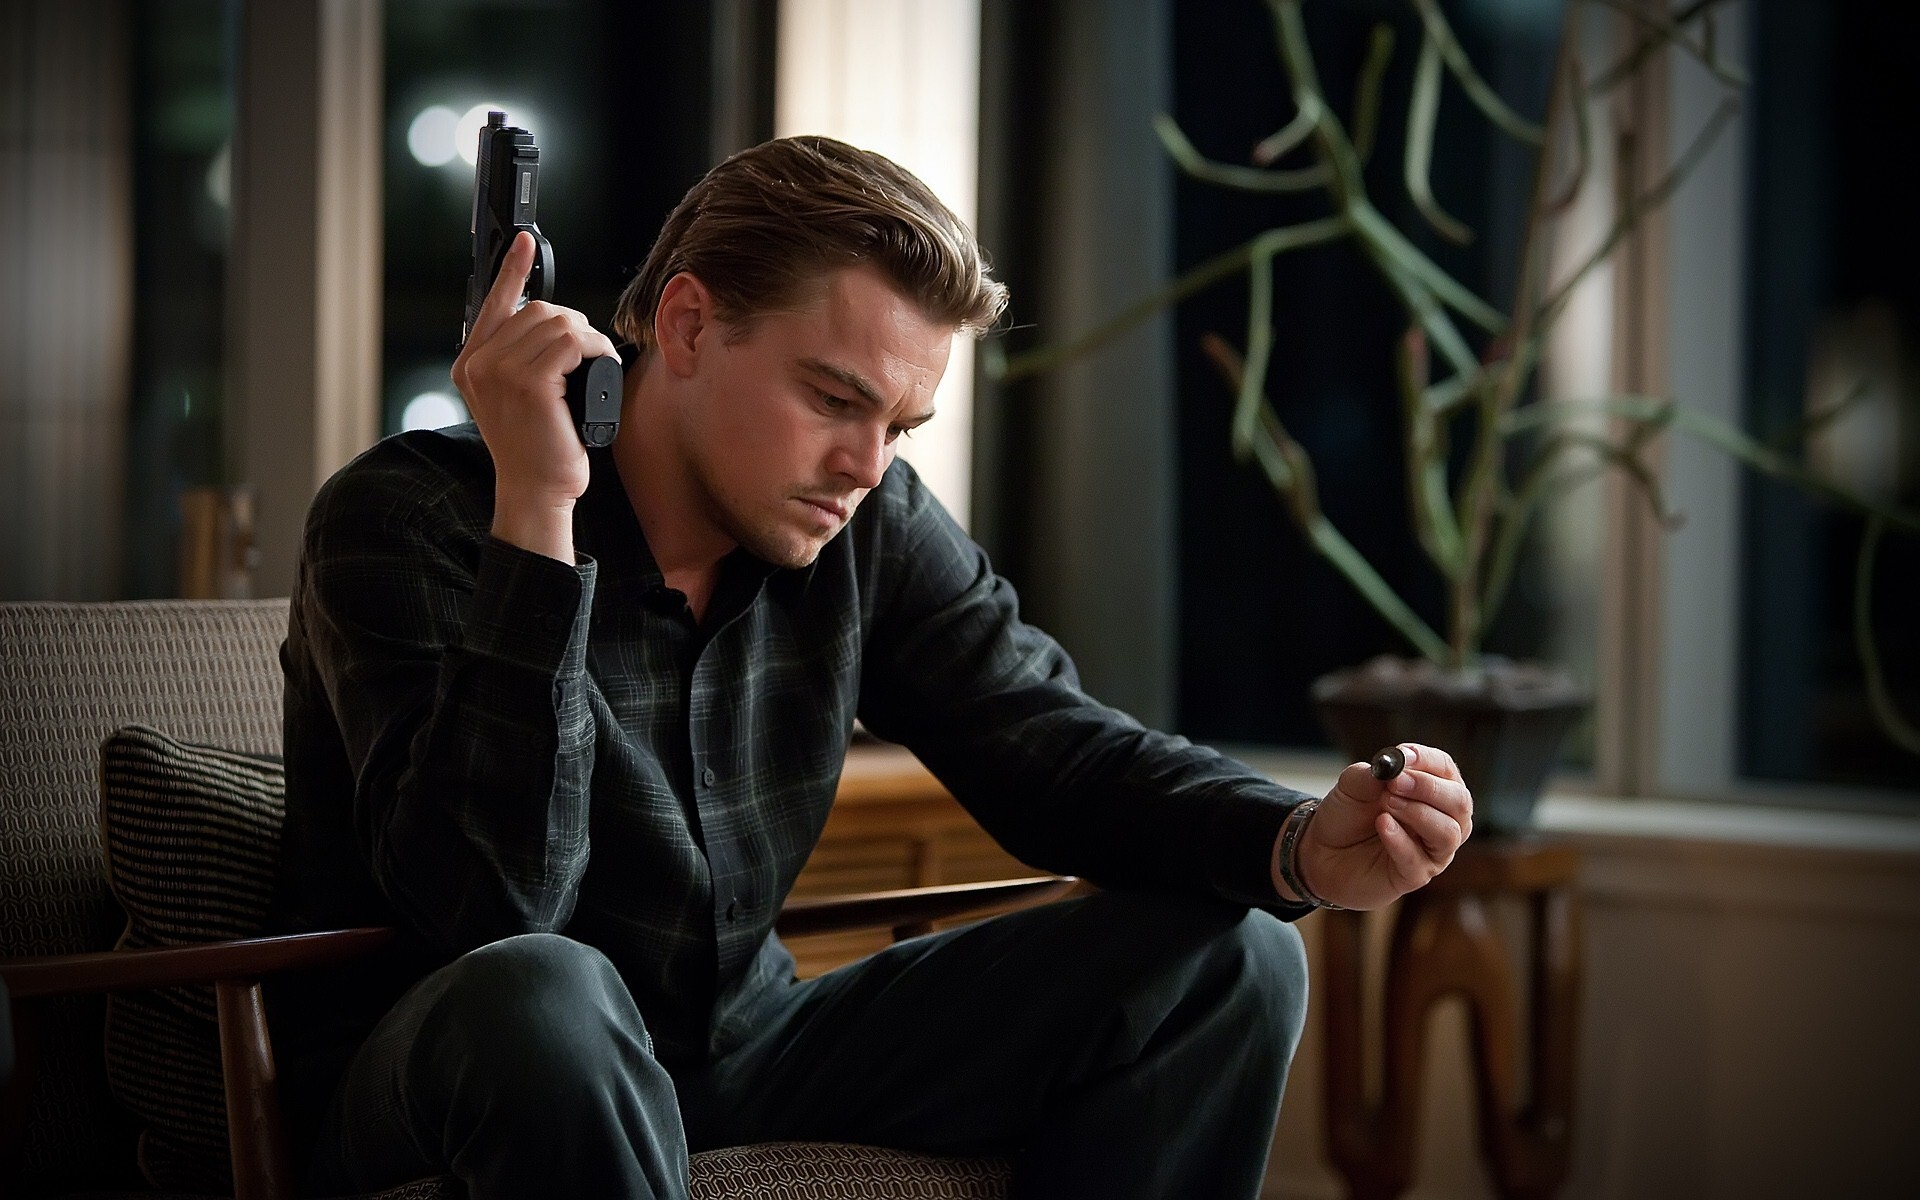 Leonardo Dicaprio Movie Scene Photo Hd Wallpapers